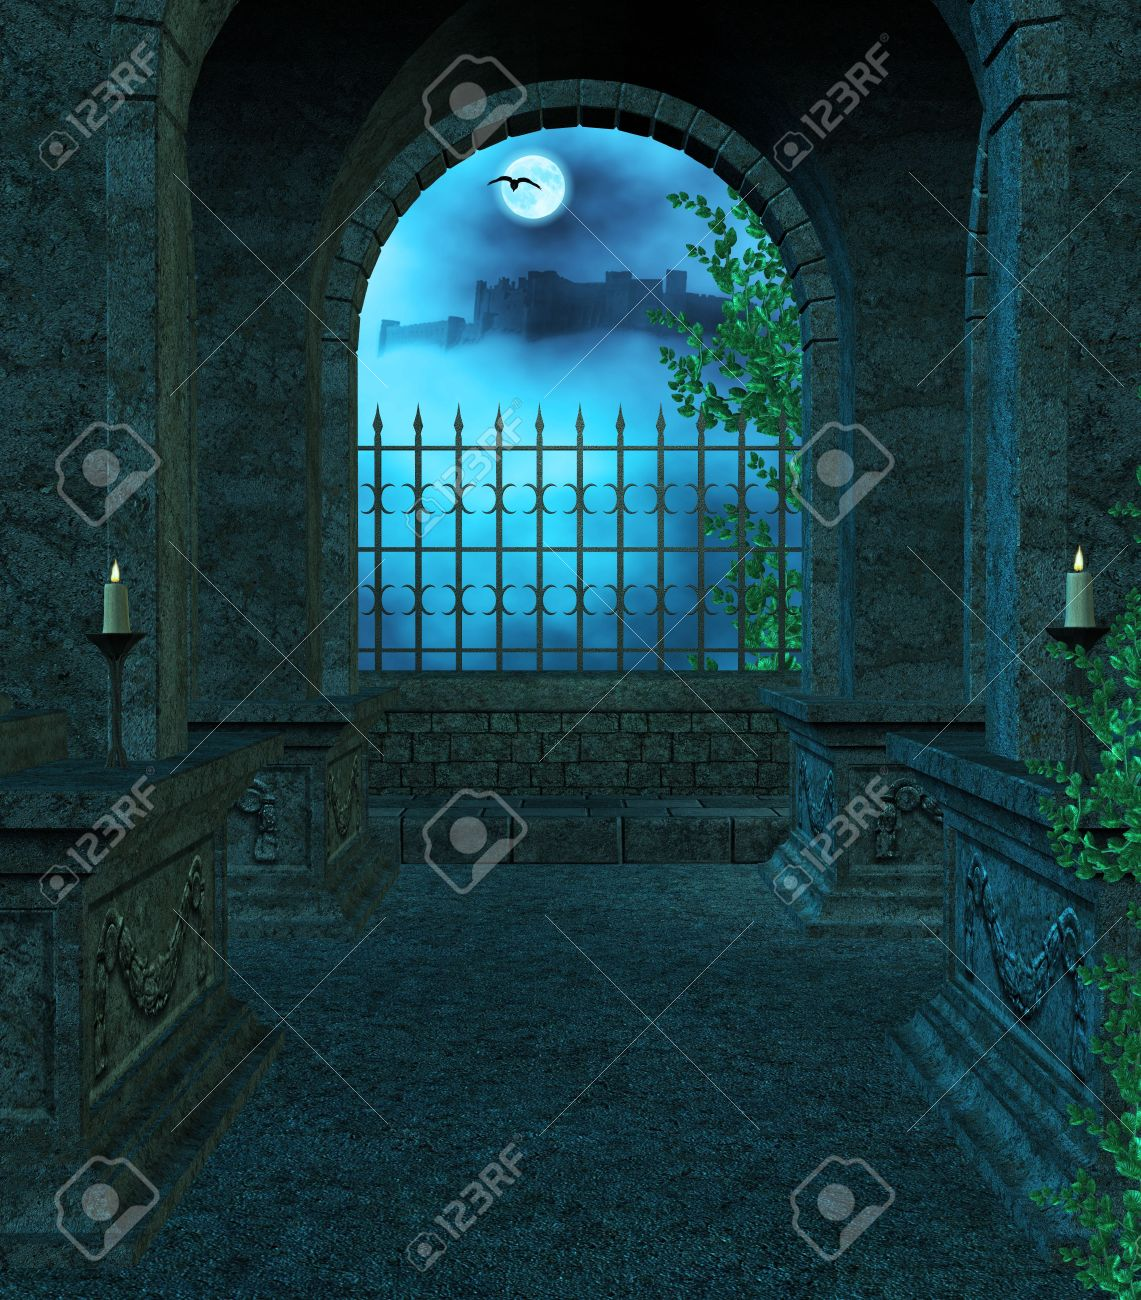 Window at night from inside - Inside The Mausoleum At Night With Candles Vines Fog Looking Out The Window Towards